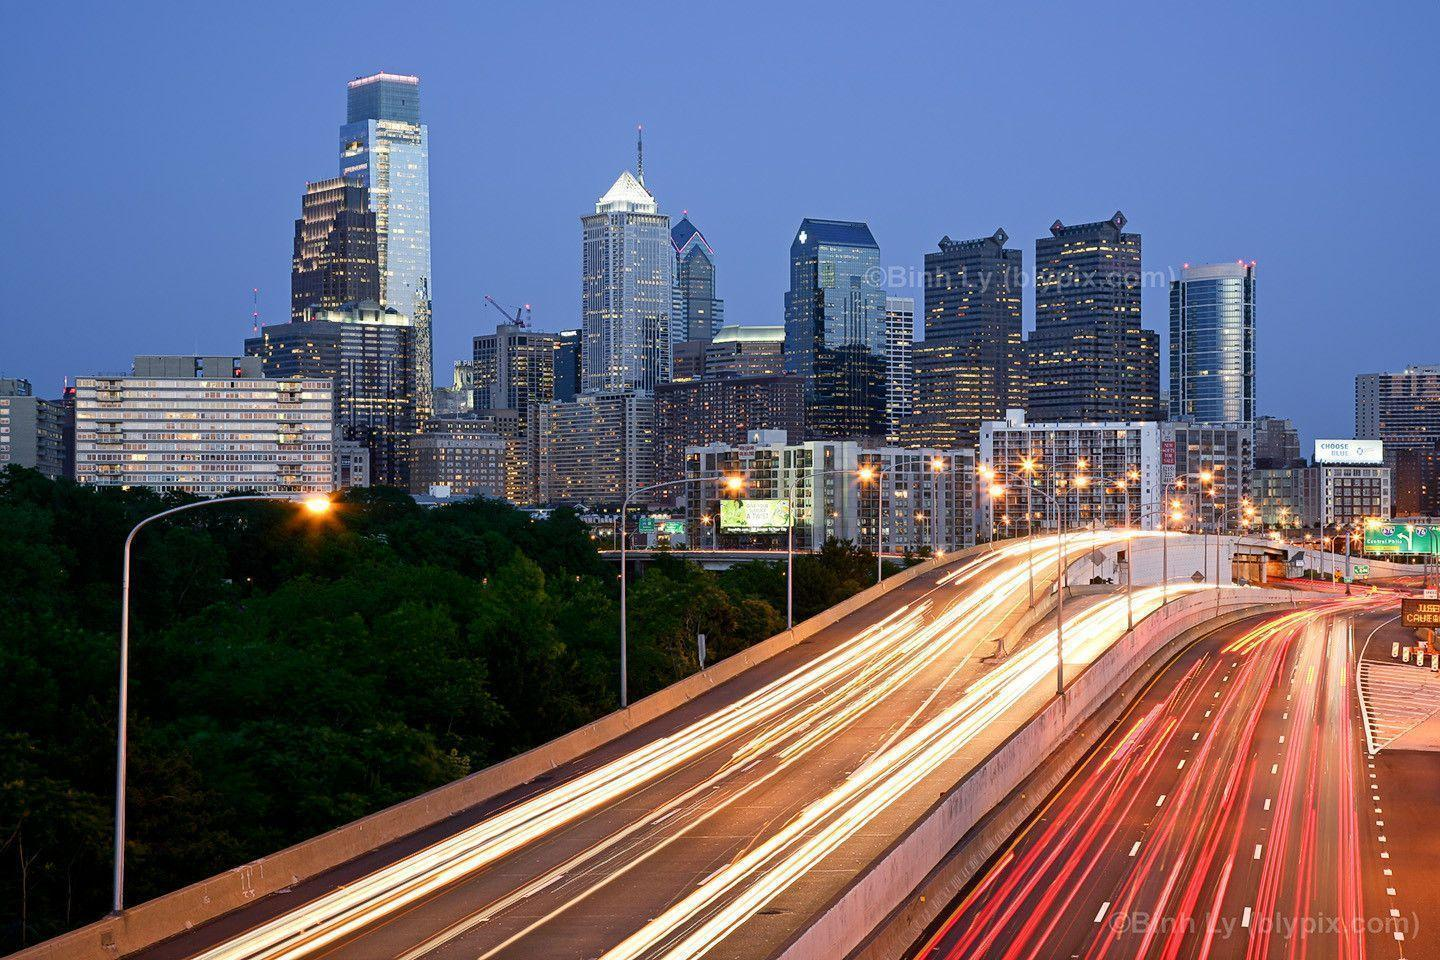 philadelphia skyline wallpaper - photo #5